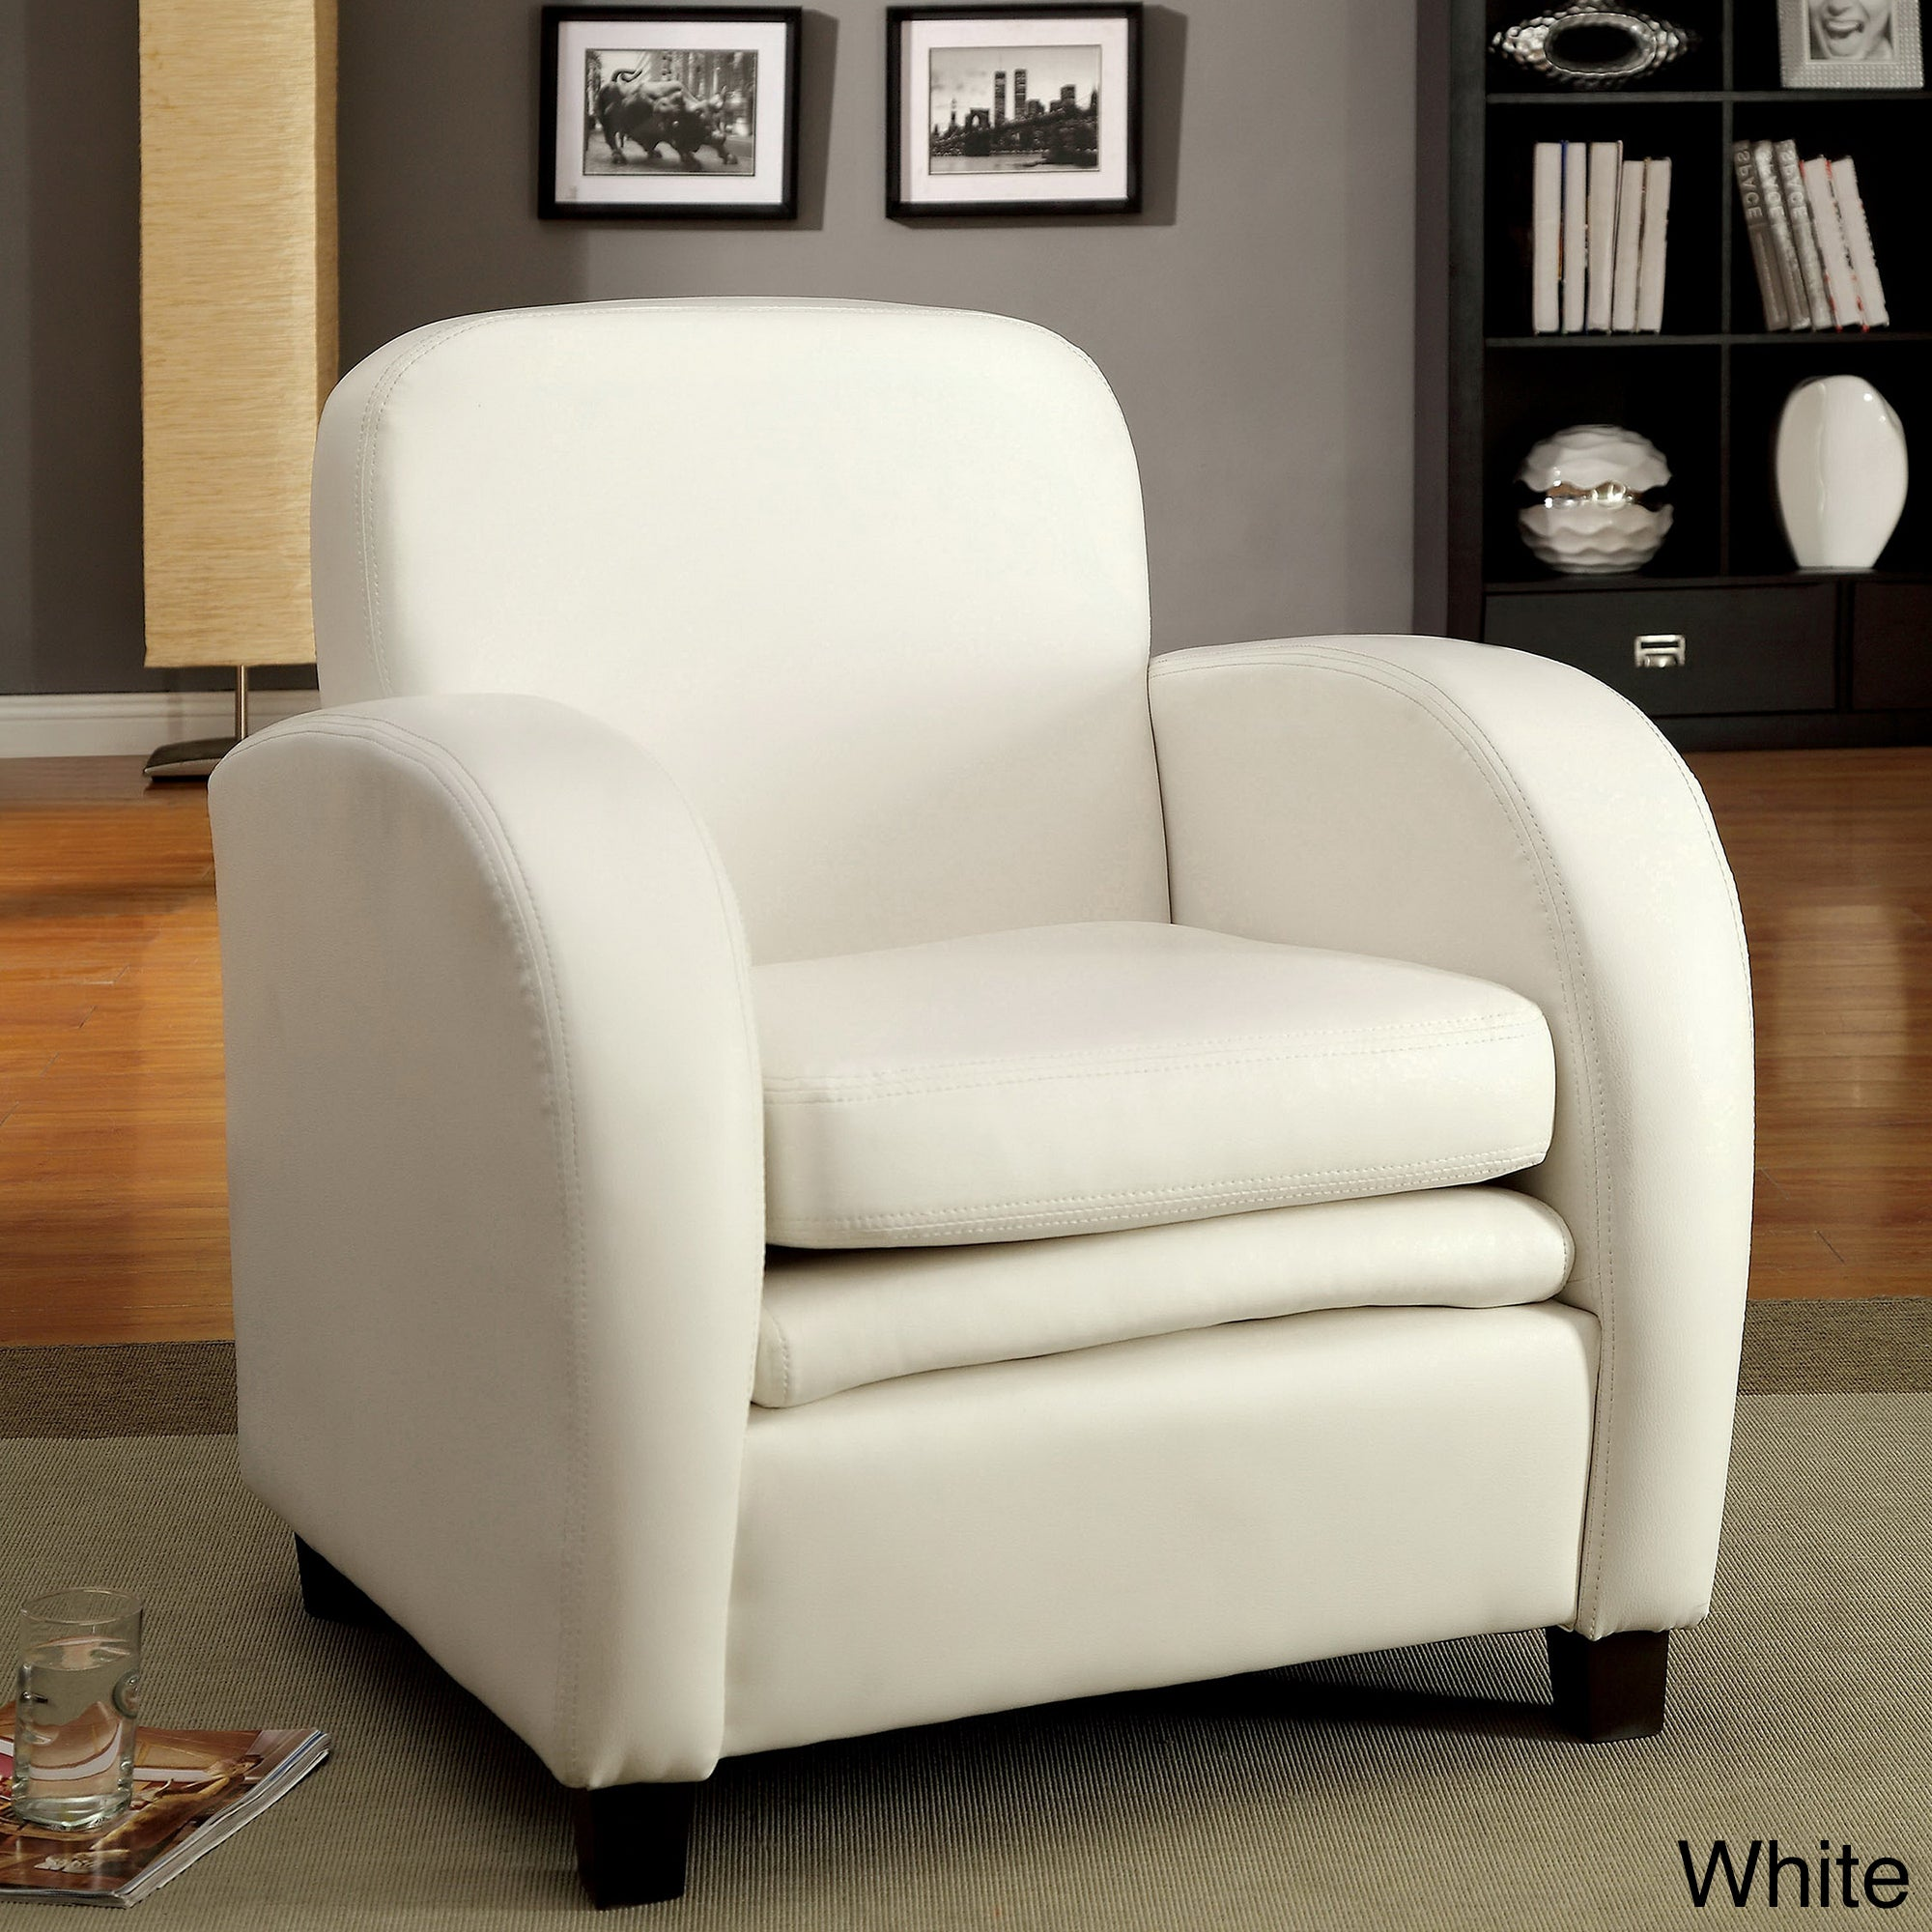 Enitial Lab Furniture of America Double Padded Club Chair...